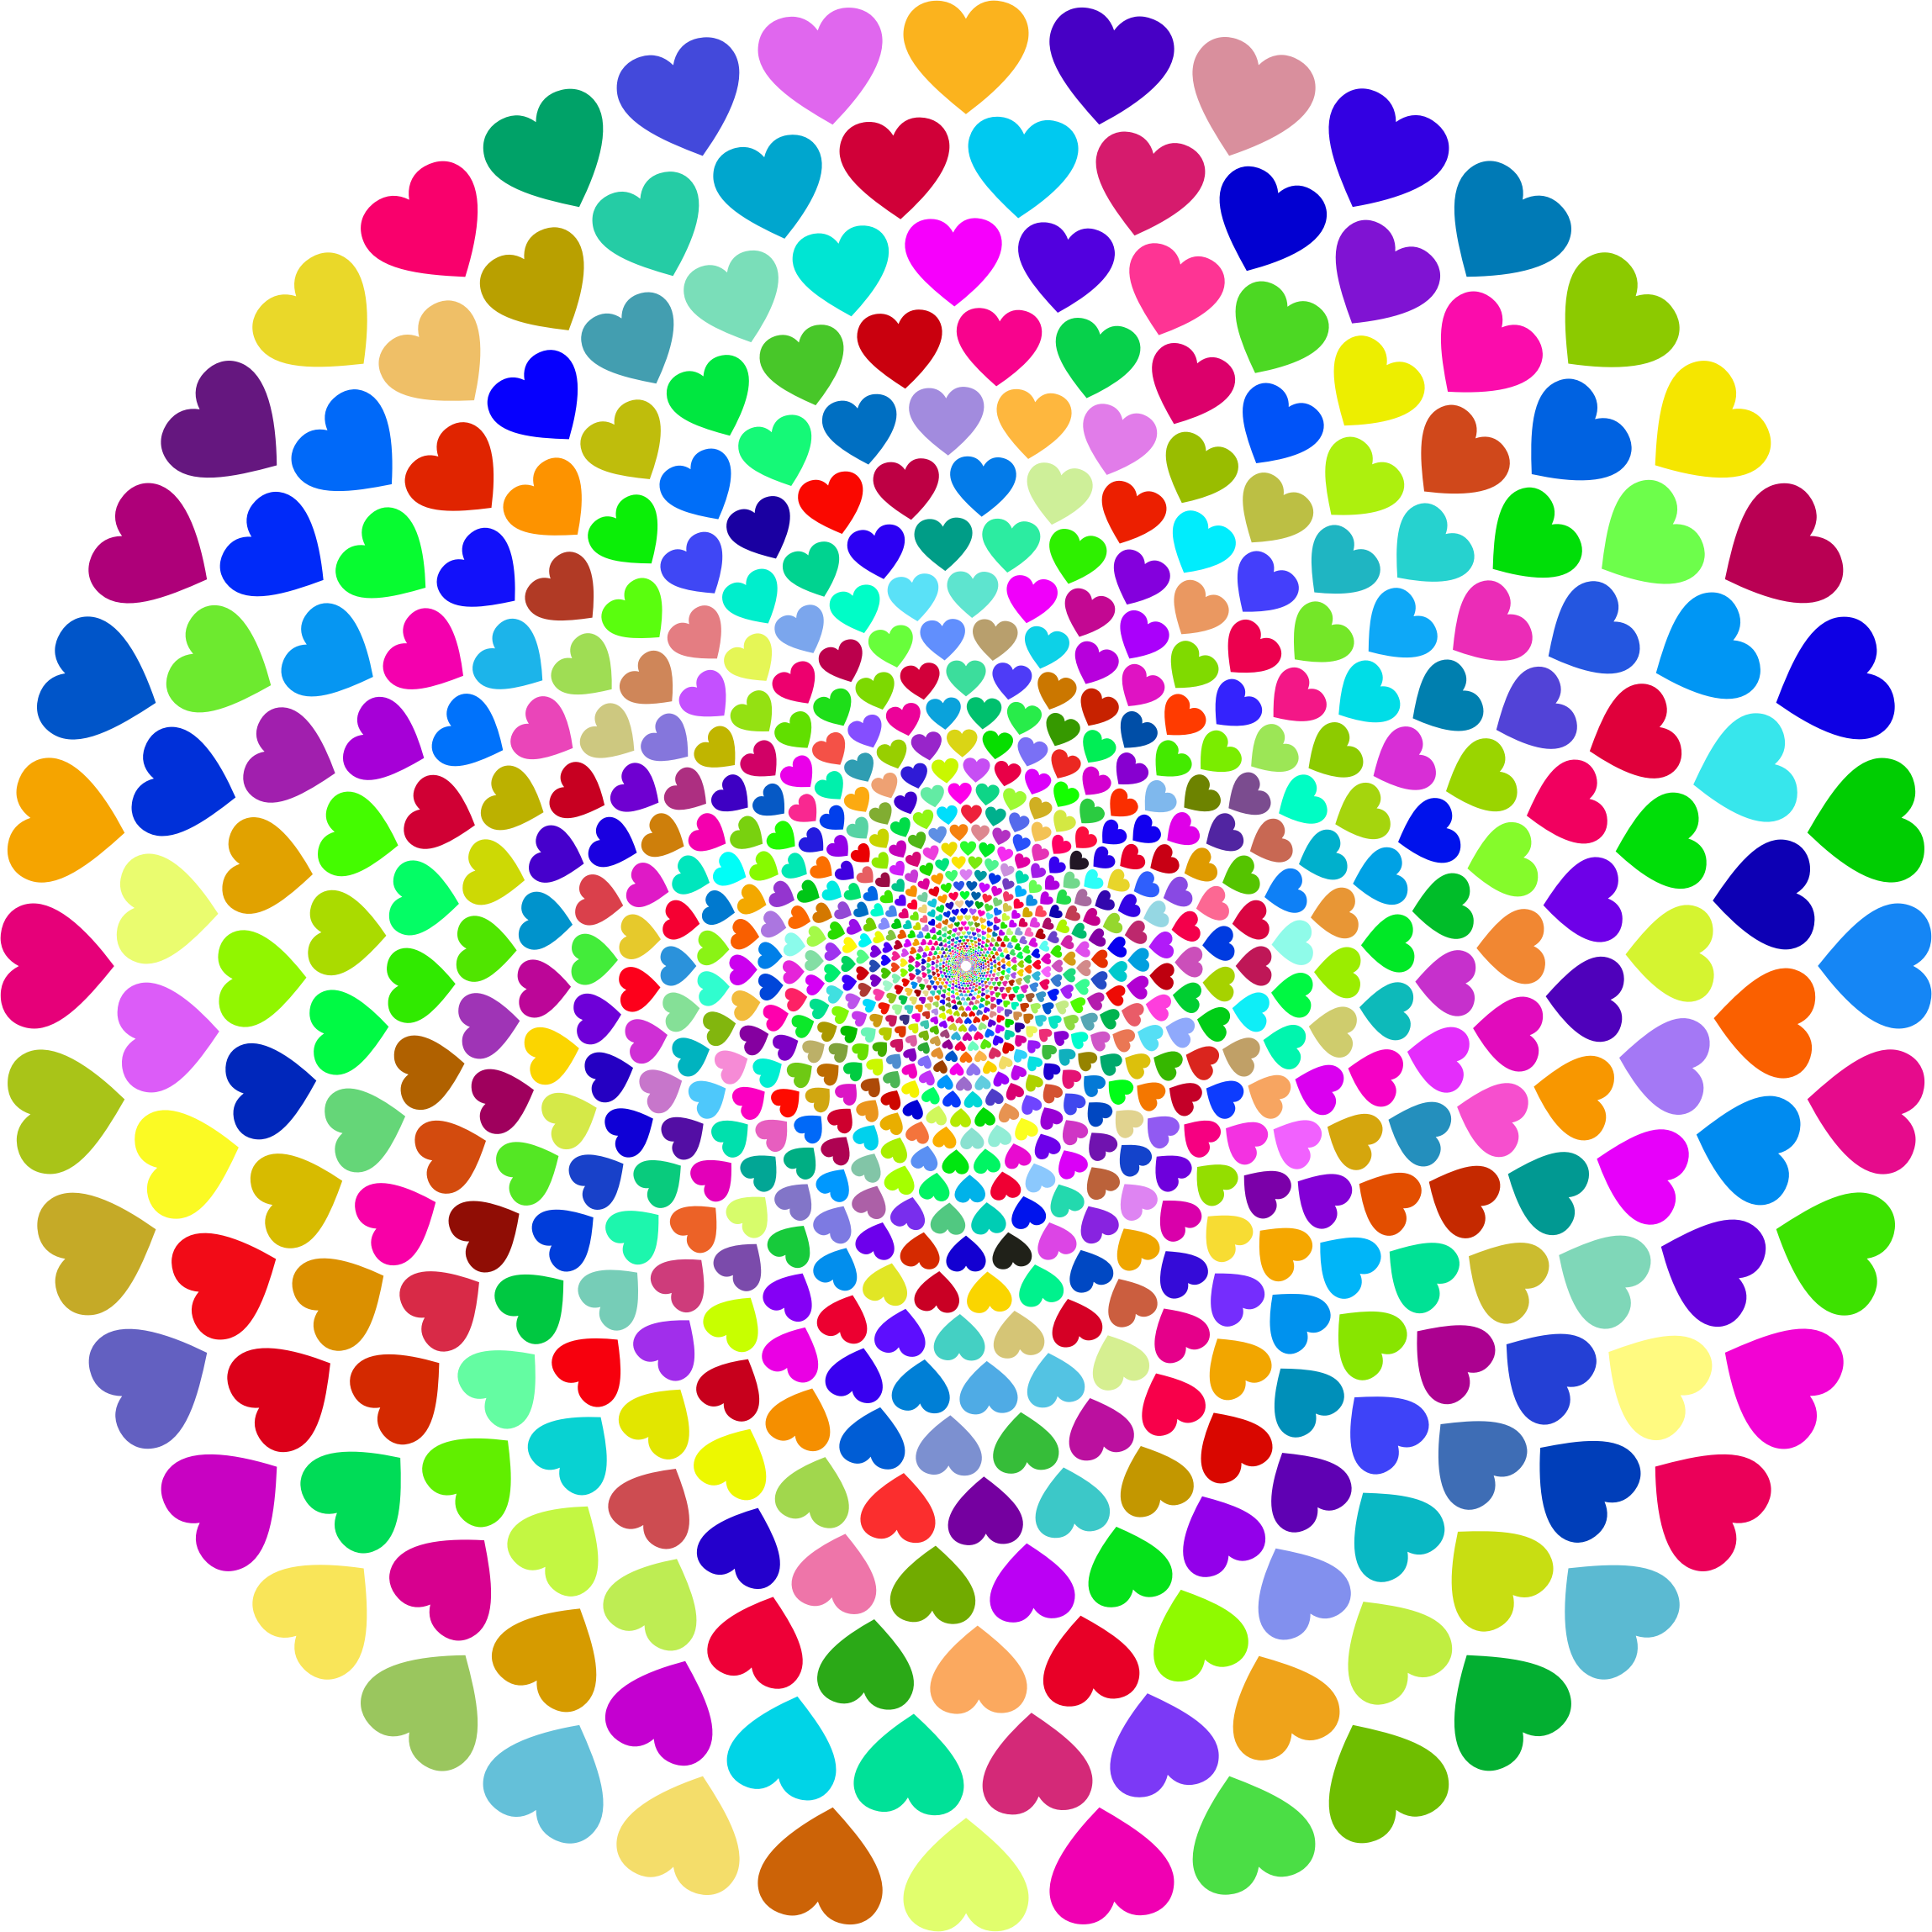 Colorful Hearts Vortex by GDJ